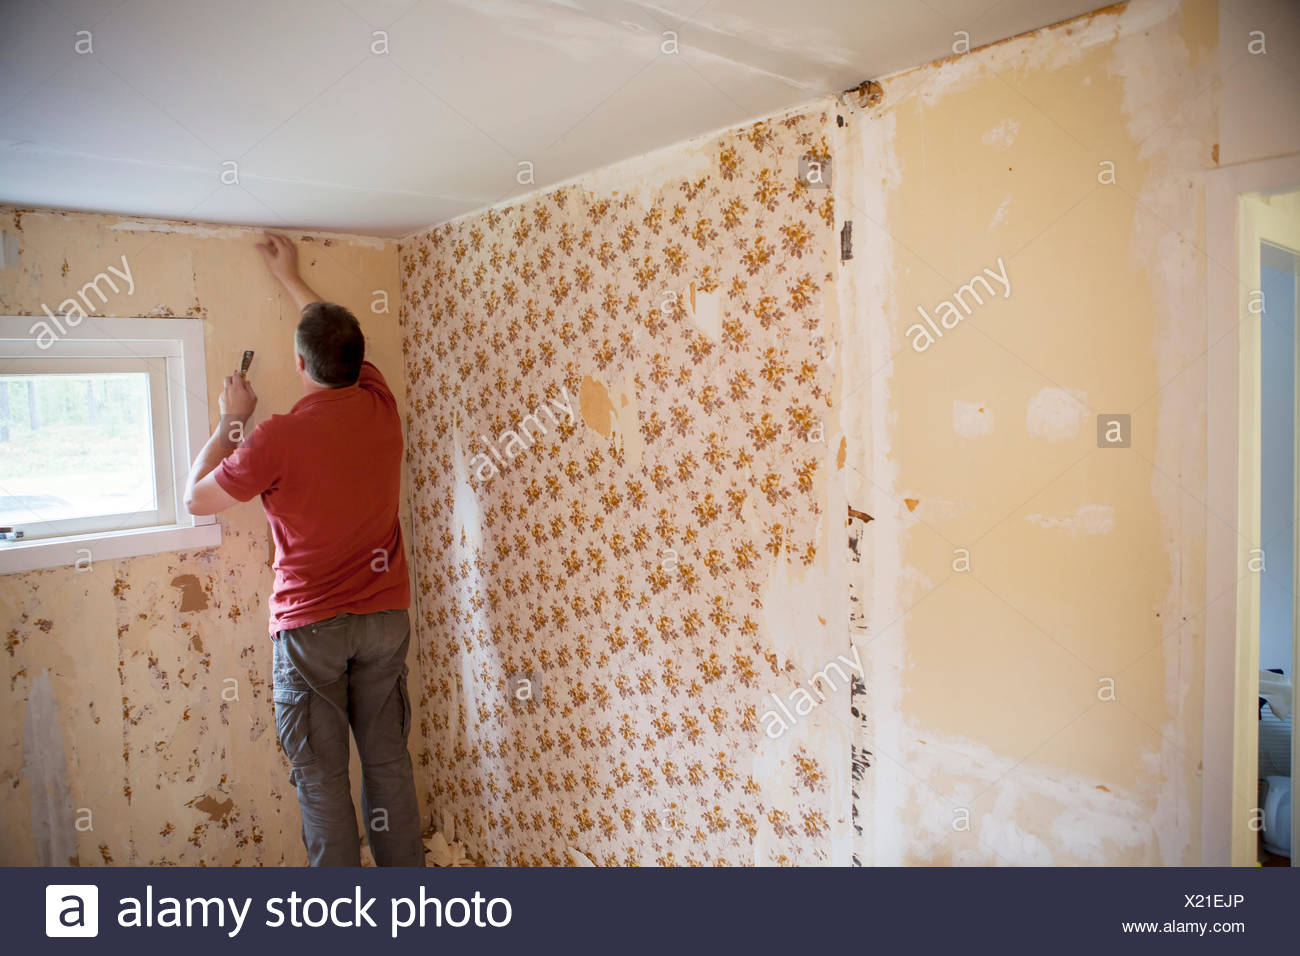 Sweden Narke Filipshyttan Rear View Of Mature Man Taking Old Wallpapers Off Wall House Room